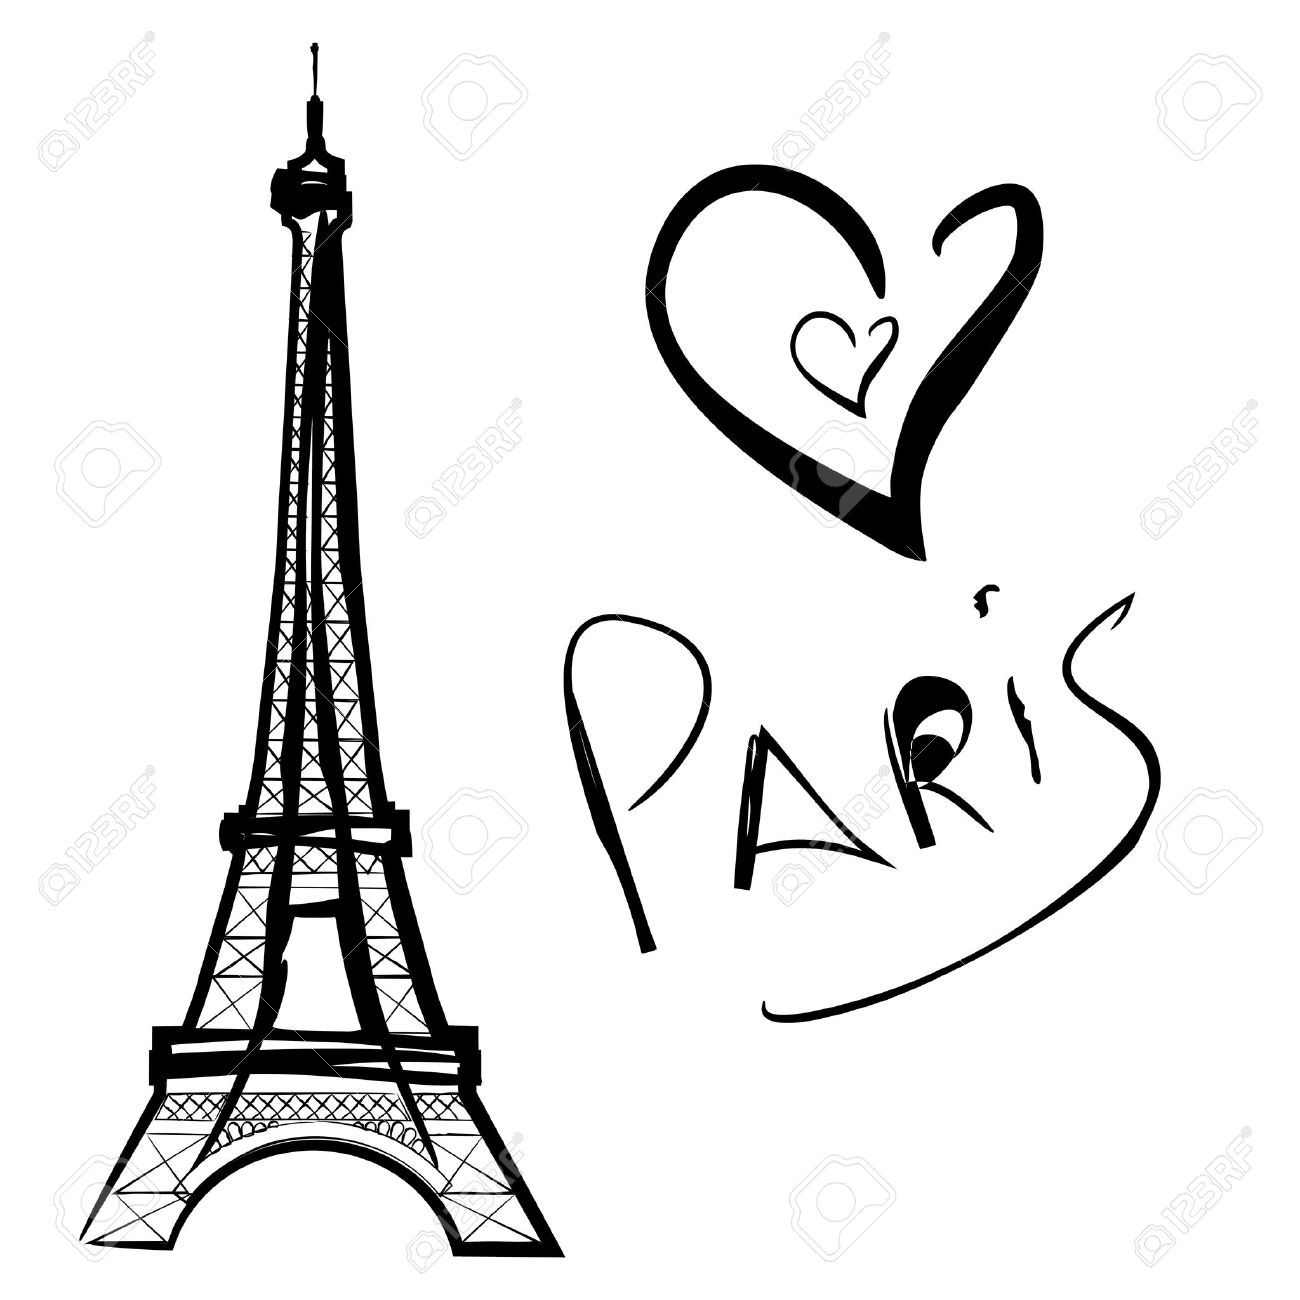 Eiffel Tower Clipart Black And White